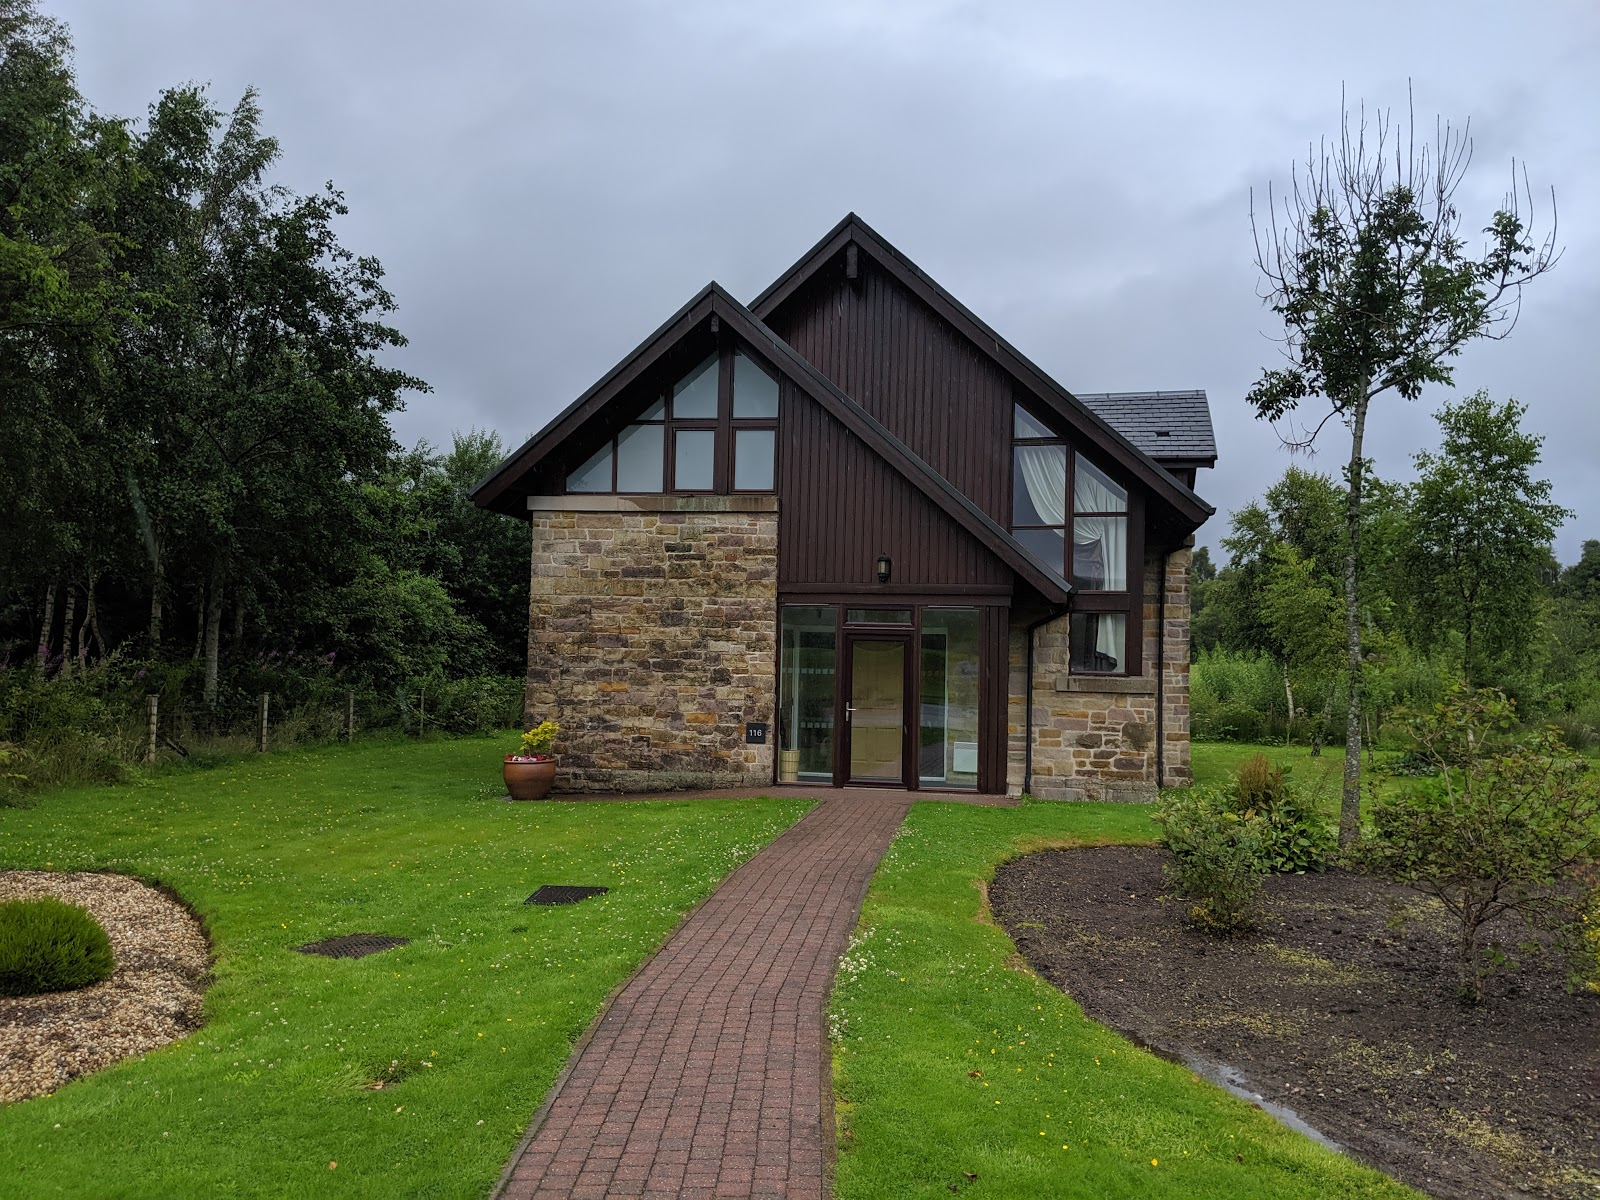 A Short Break at Cameron Lodges, Loch Lomond - lodge 116 exterior